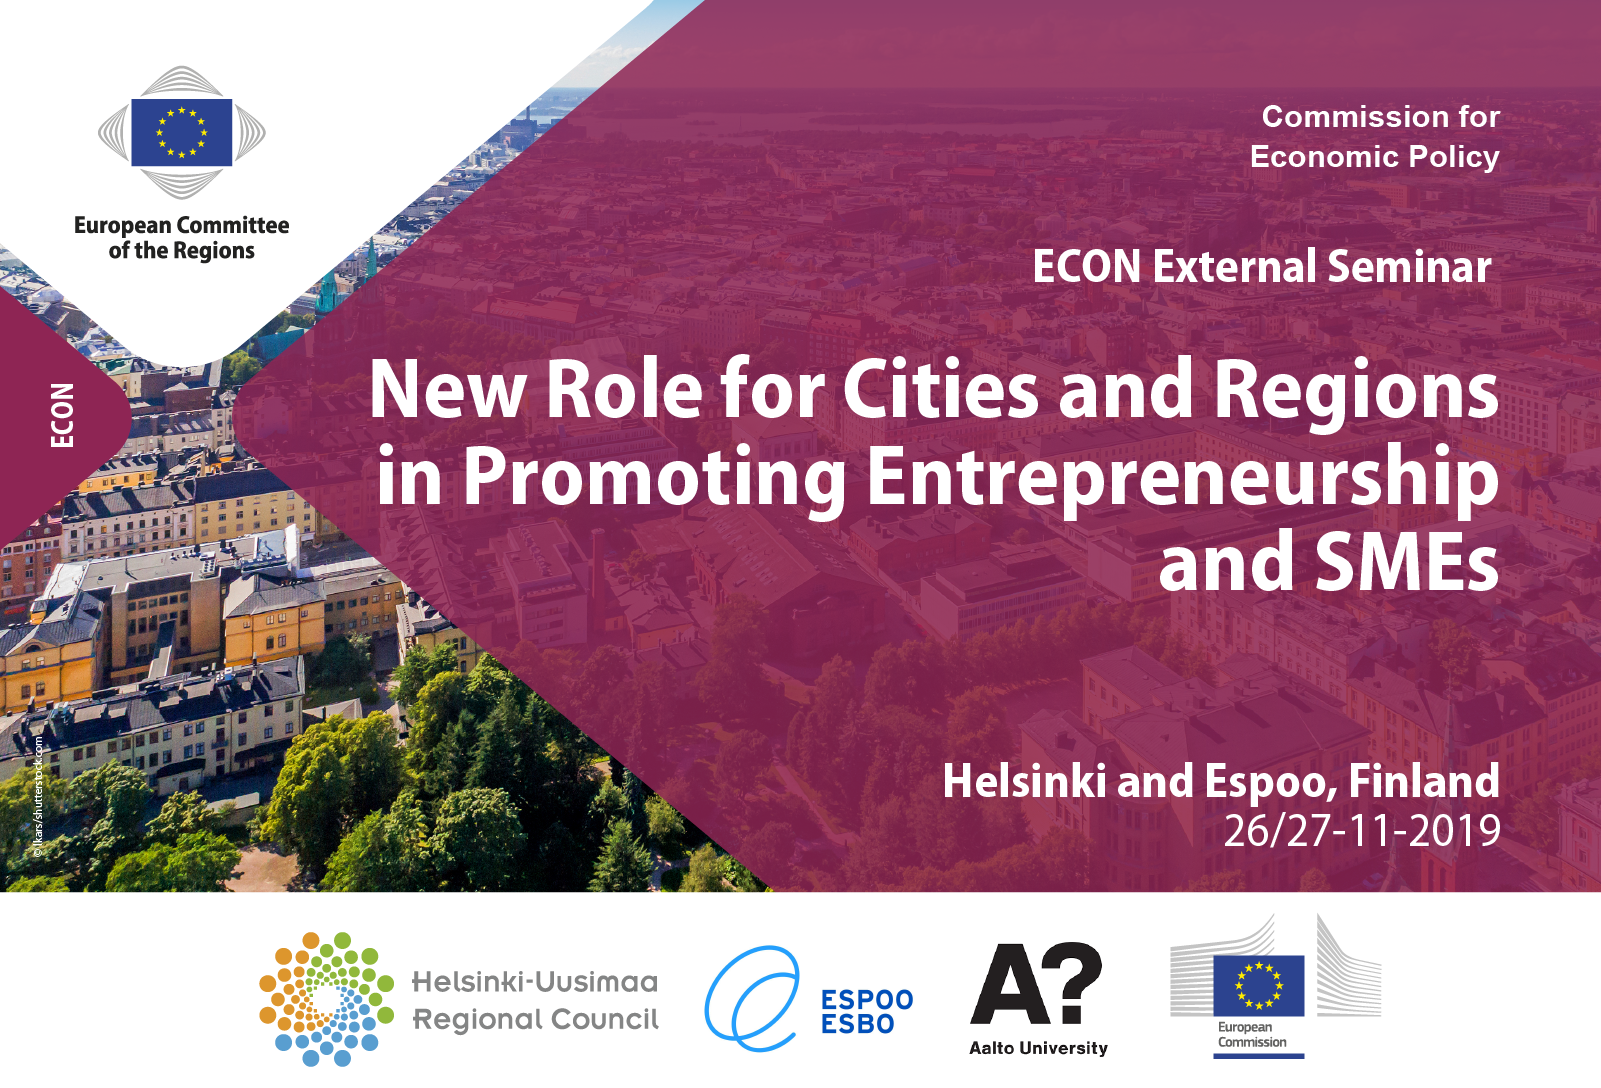 New Role for Cities and Regions in Promoting Entrepreneurship and SMEs